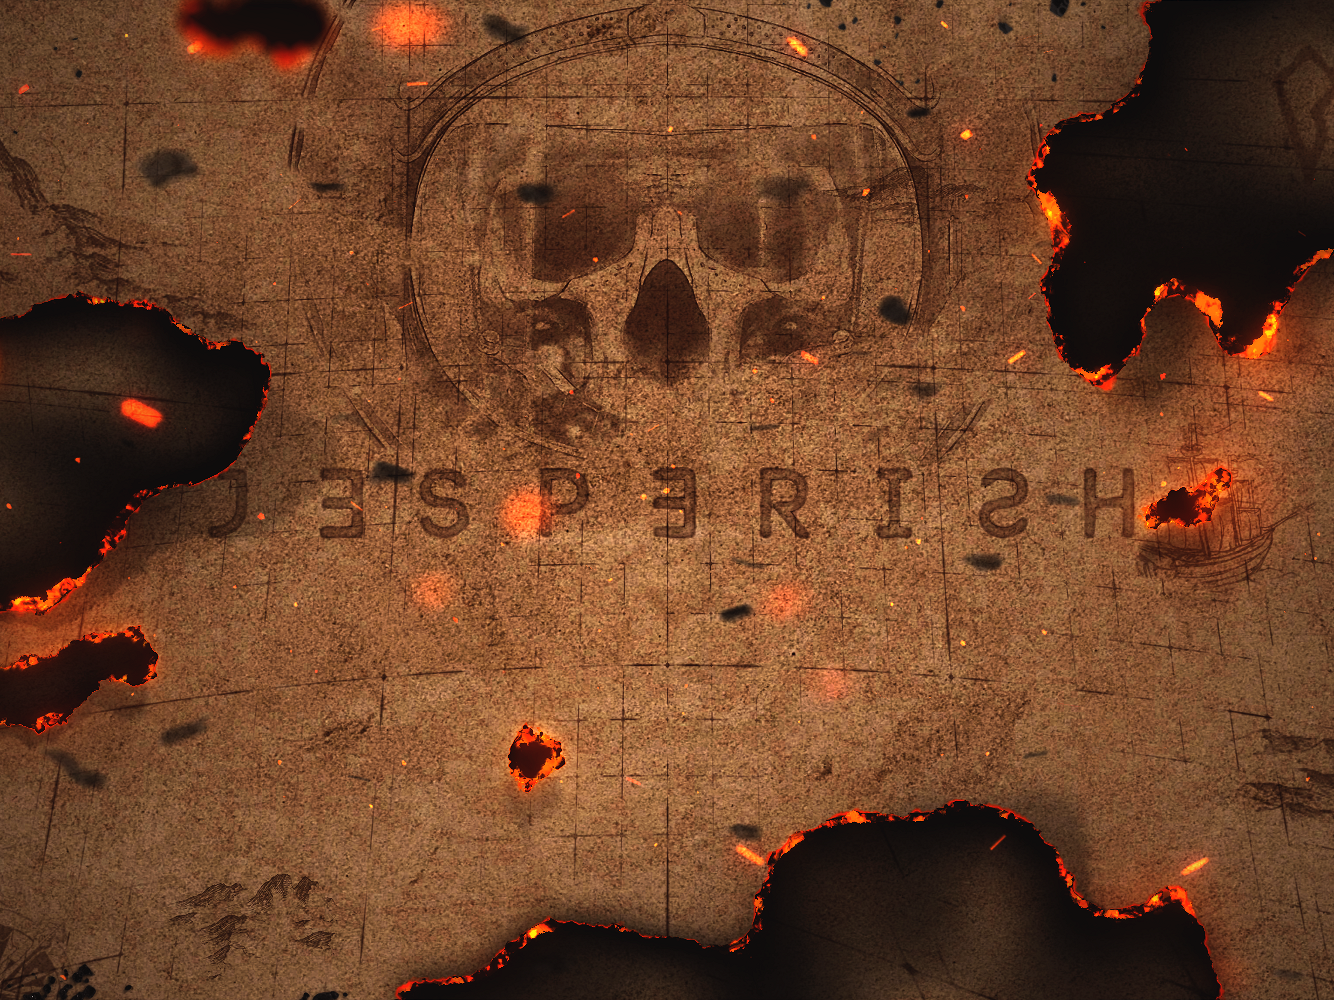 Jesperish Header / Contest pirates burning paper paper after effects header contest jesperish